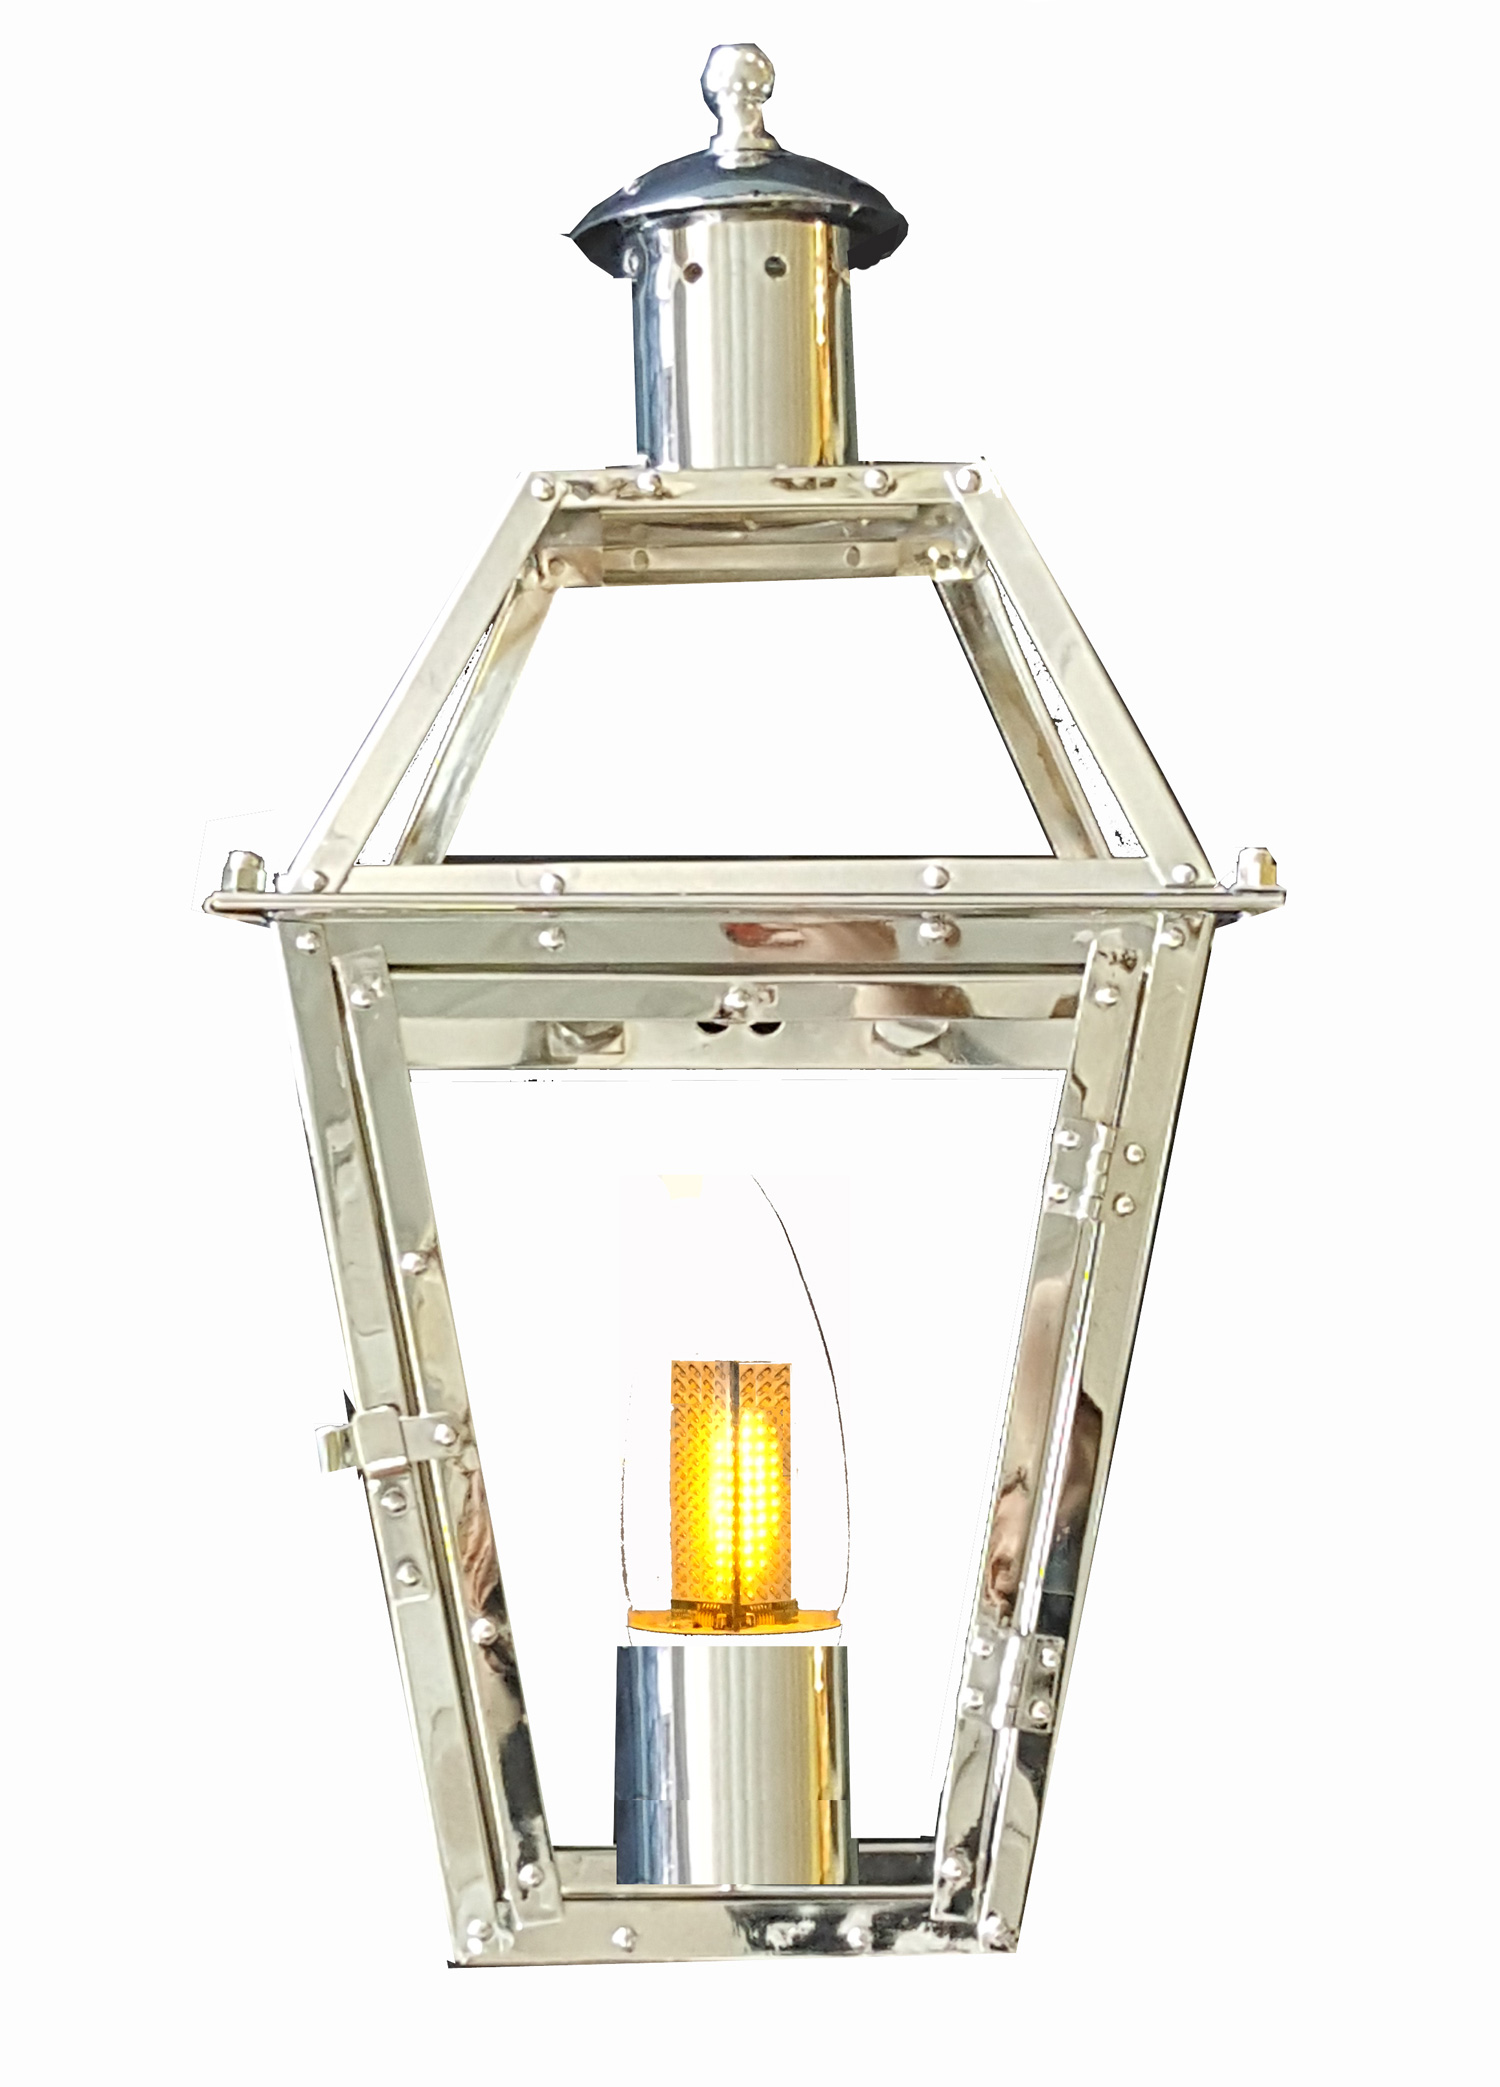 New Light Of Myanmar Daily Journal: Chrome Plated 24″ French Quarter Lantern